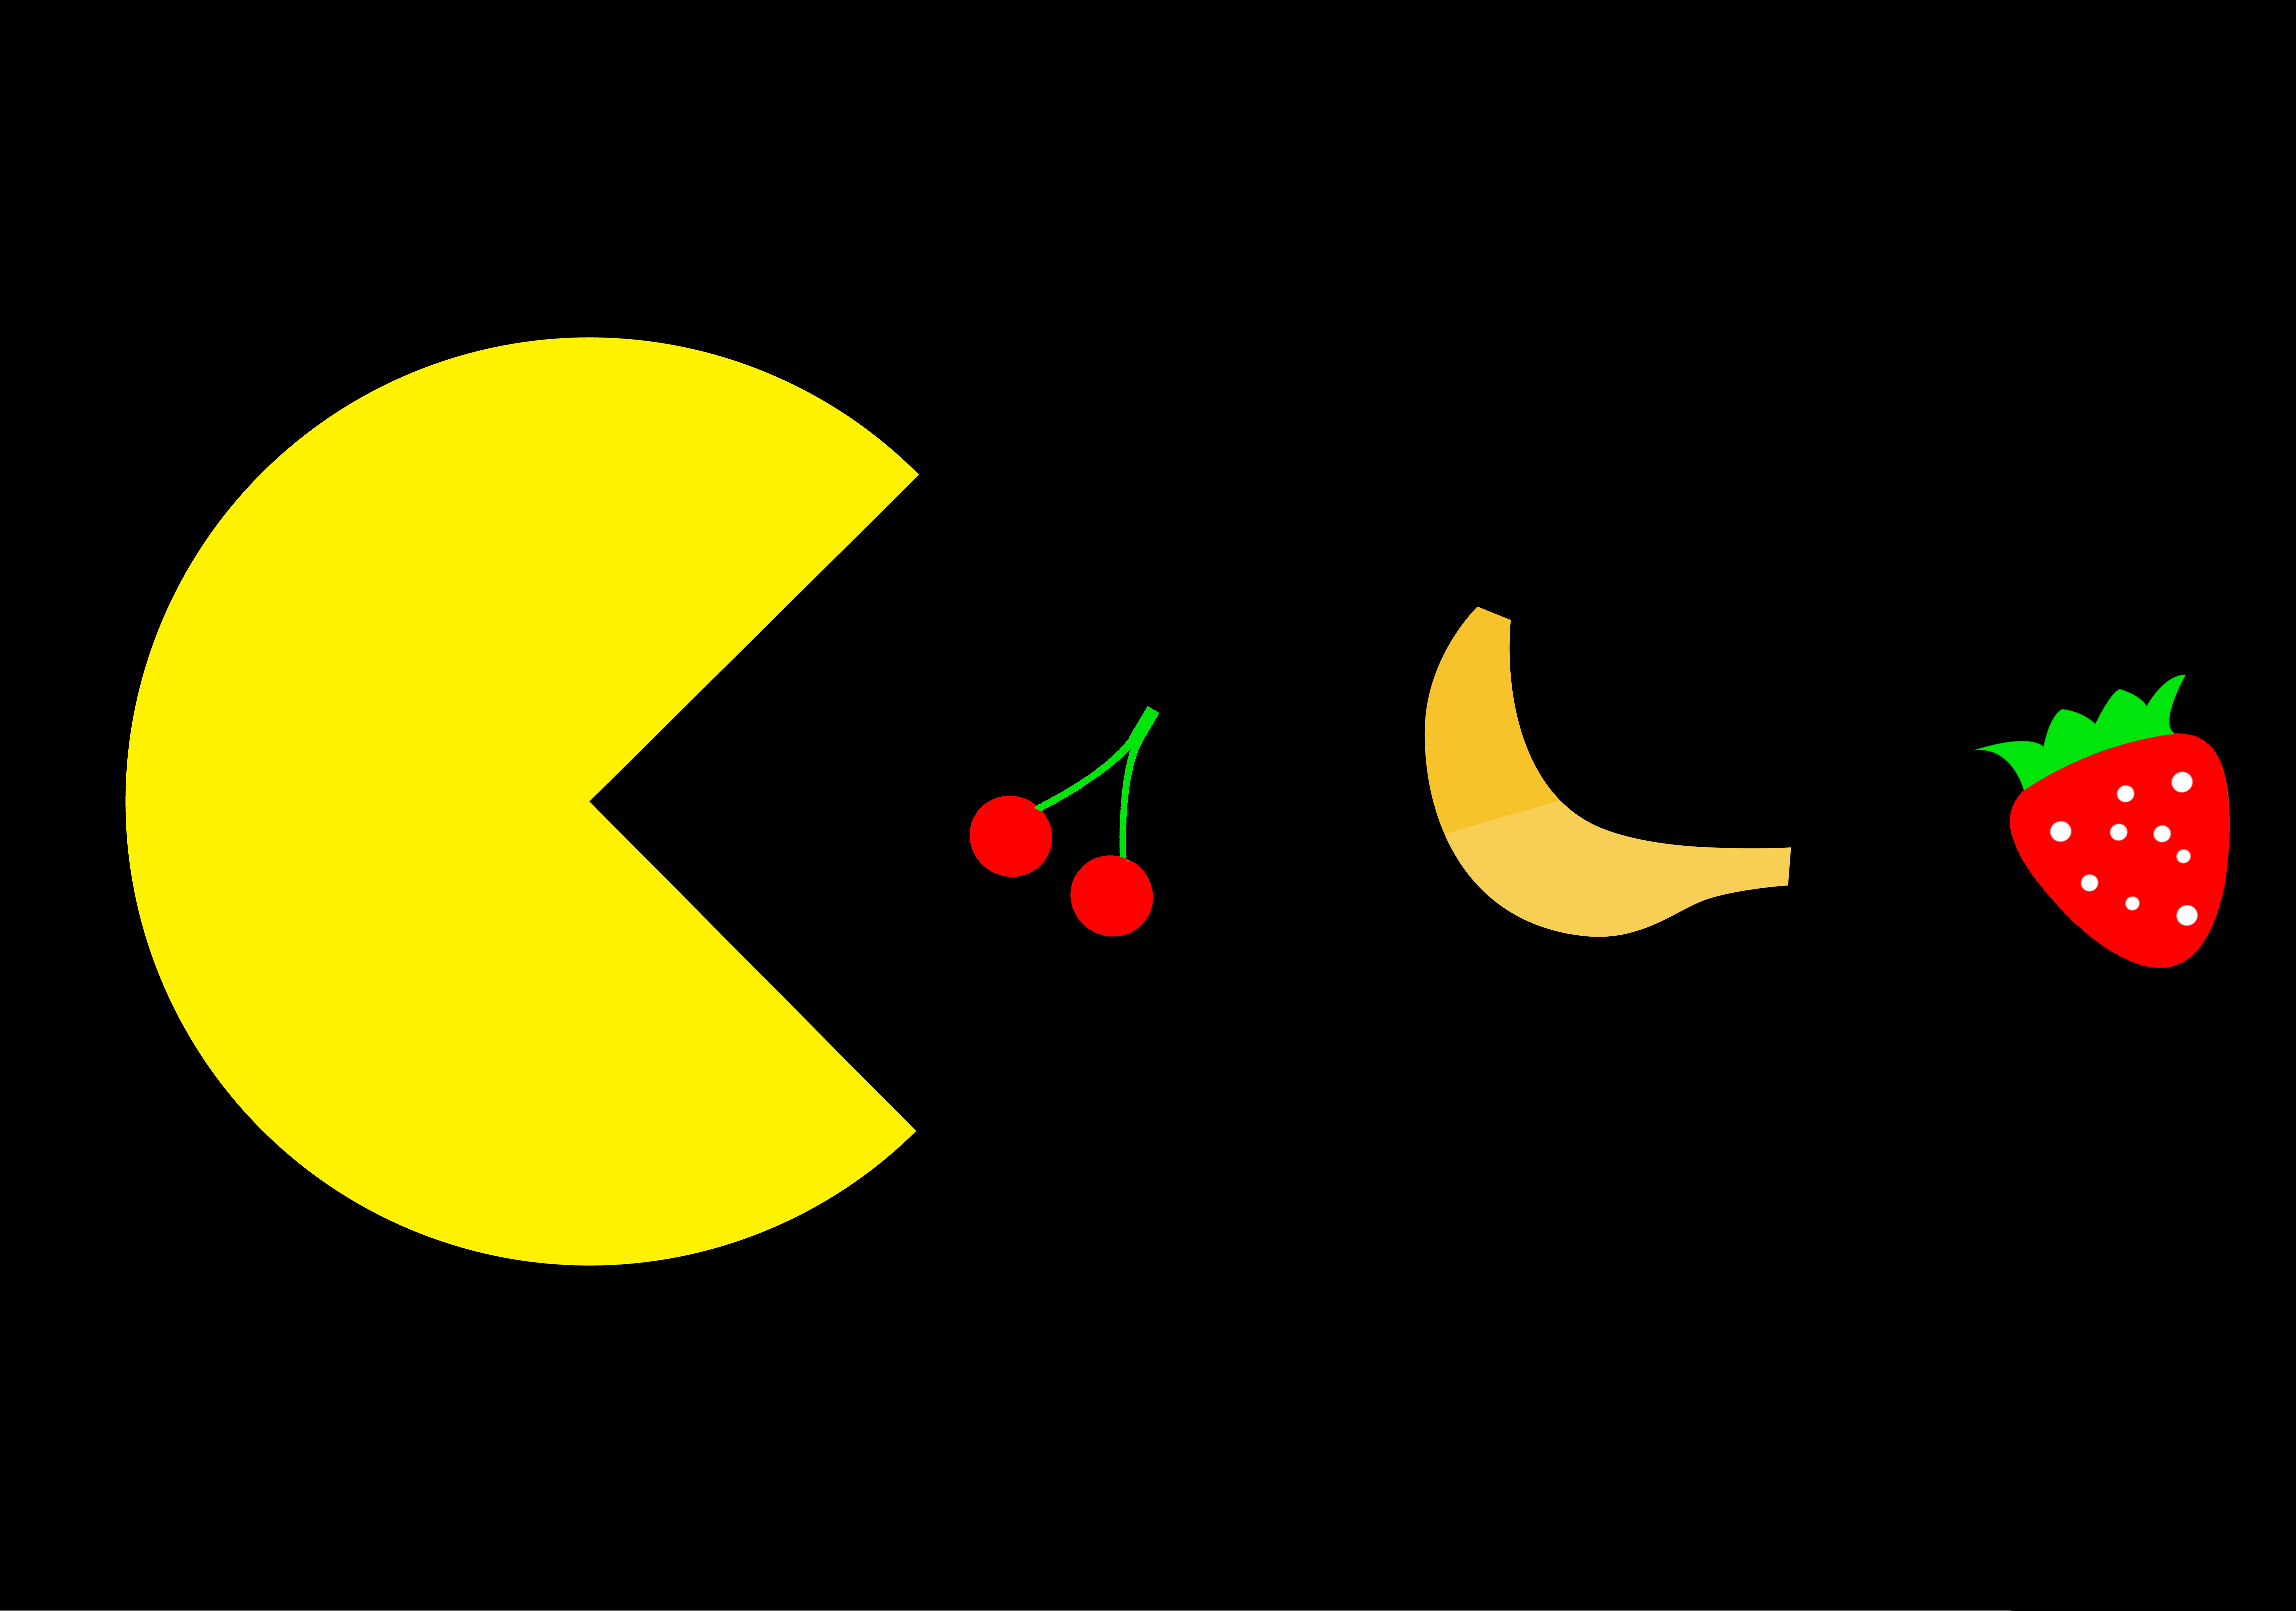 On black background, a yellow Pac-Man disk prepares to eat cherries, a banana, and a strawberry